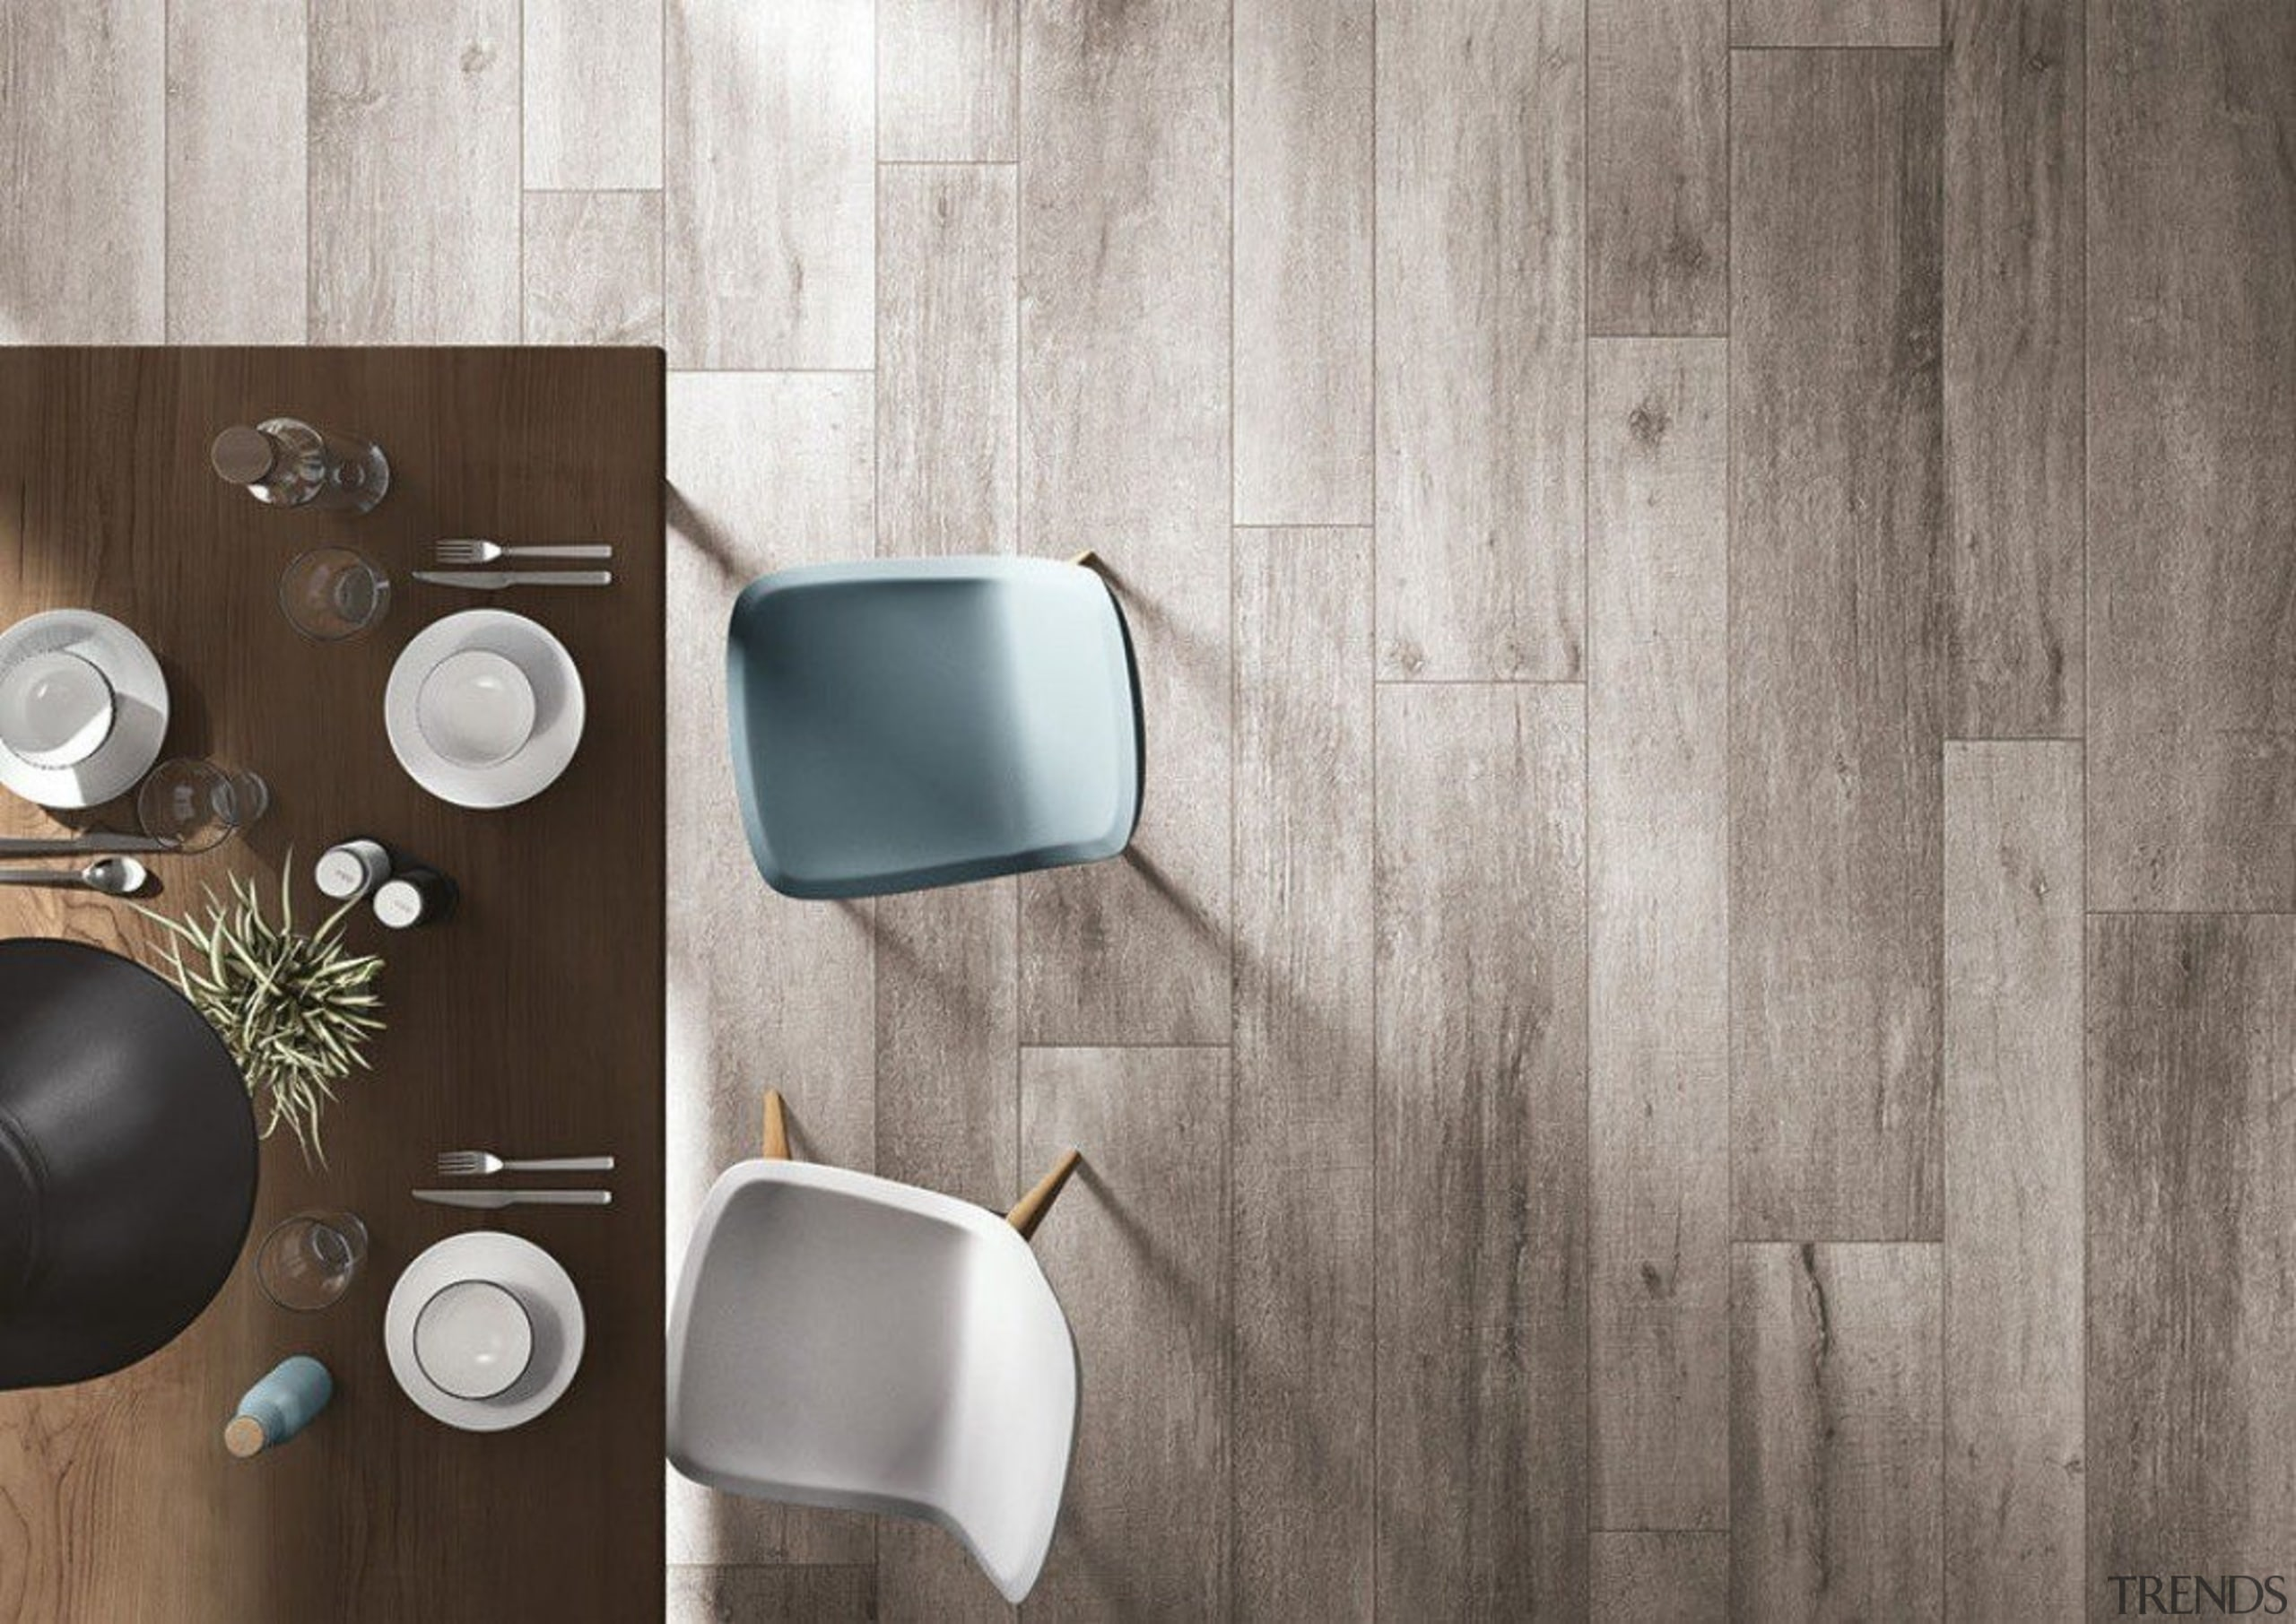 Cadore by Cotto D'Este - Cadore by Cotto floor, flooring, product, product design, tap, tile, wall, wood, wood stain, gray